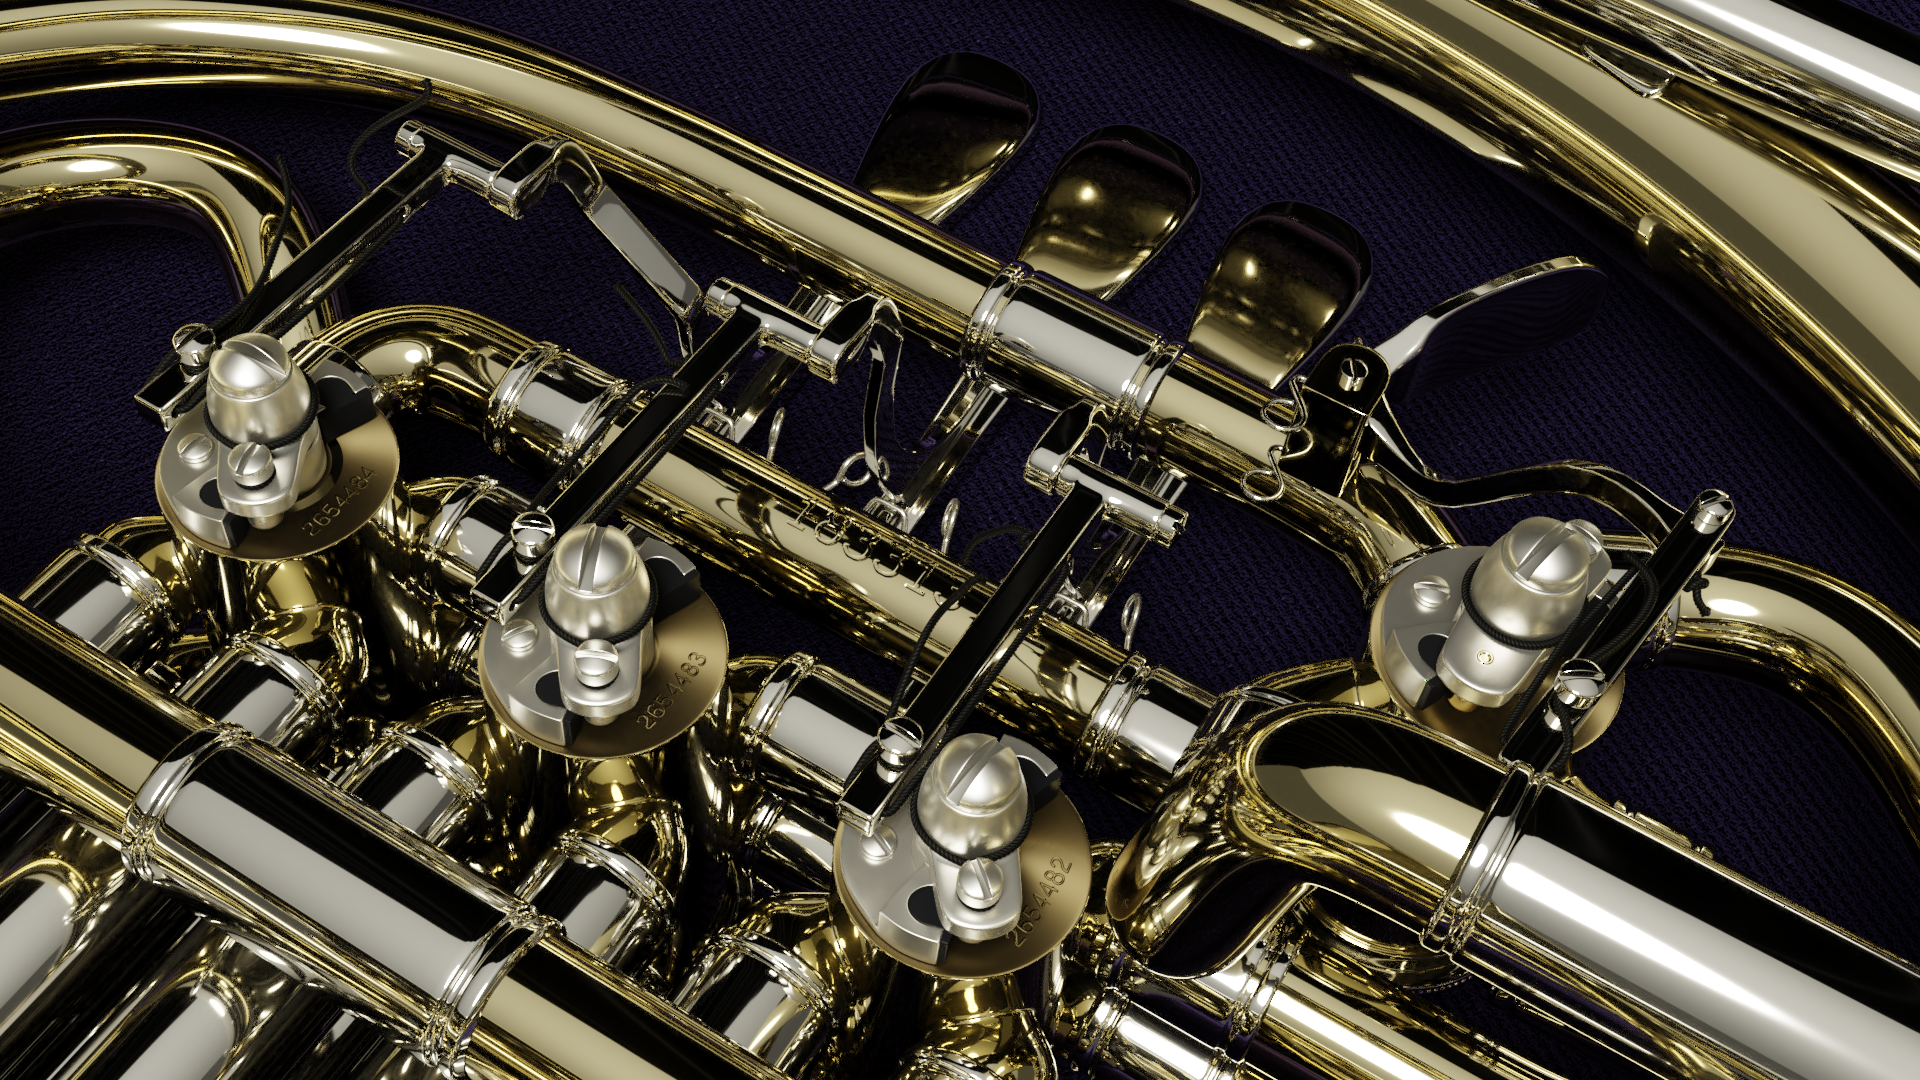 Clarinet Wallpapers